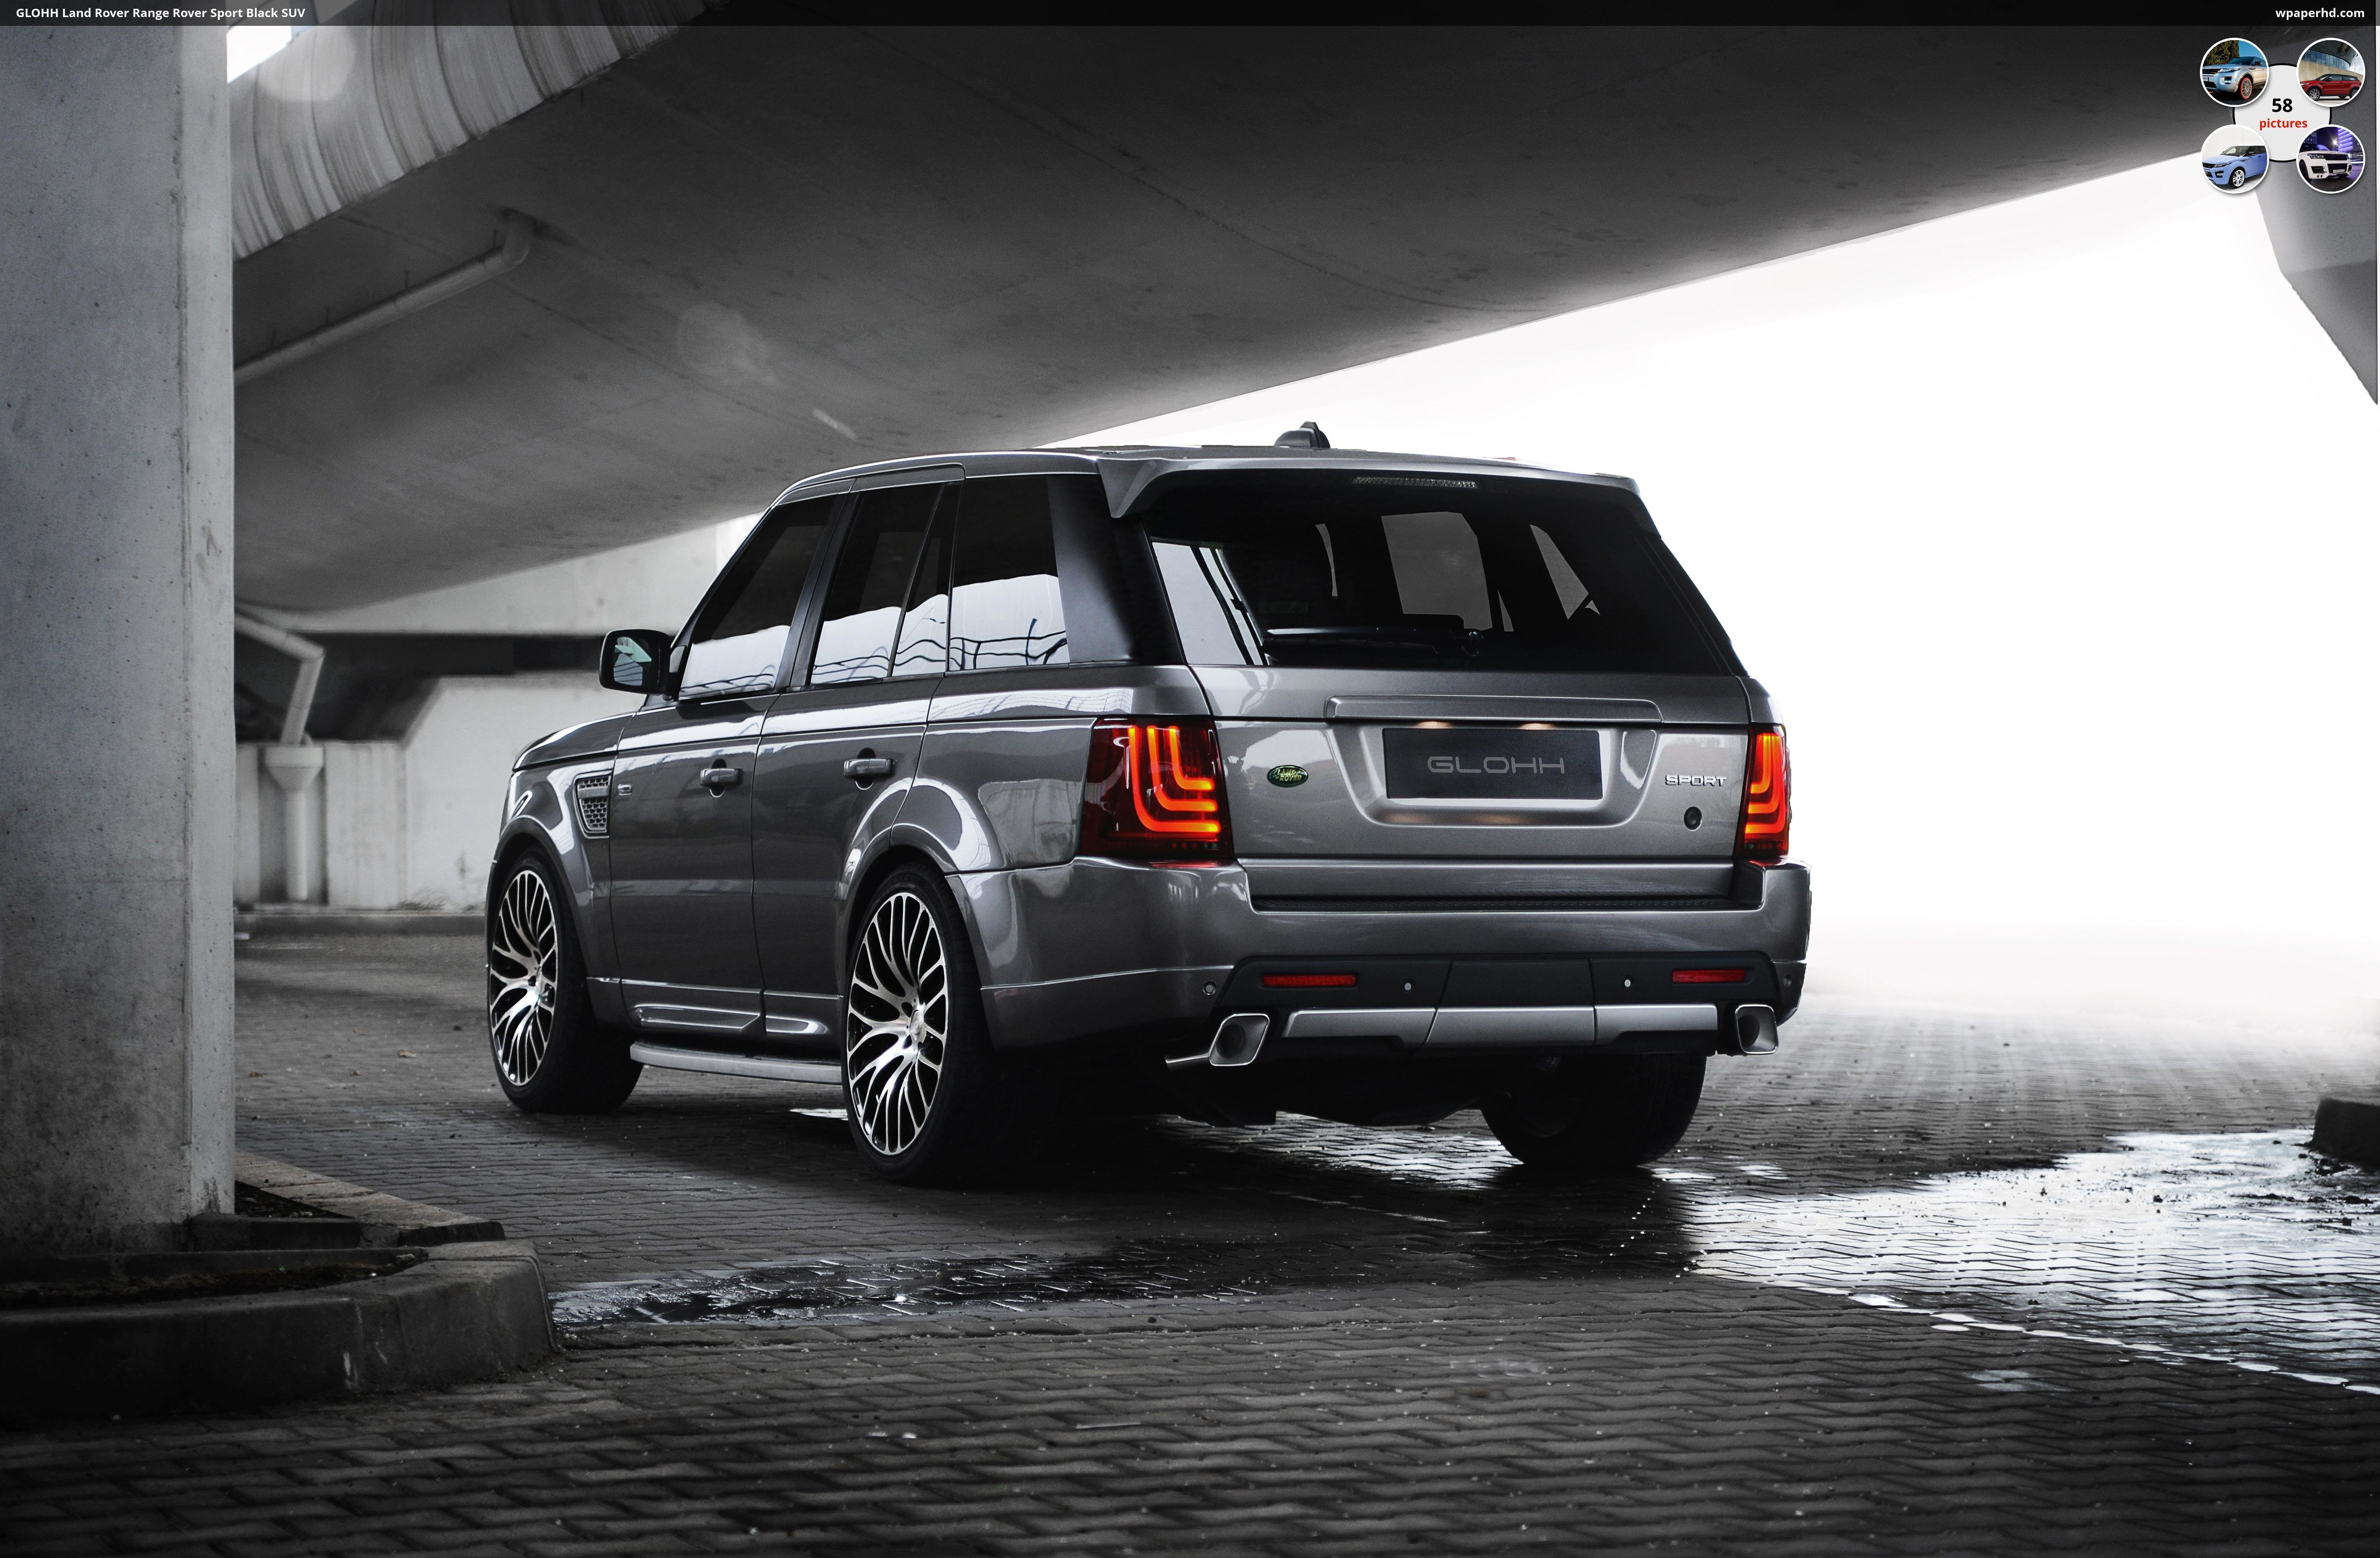 Latest Glohh Land Rover Range Rover Sport Black Suv Wallpaper Free Download